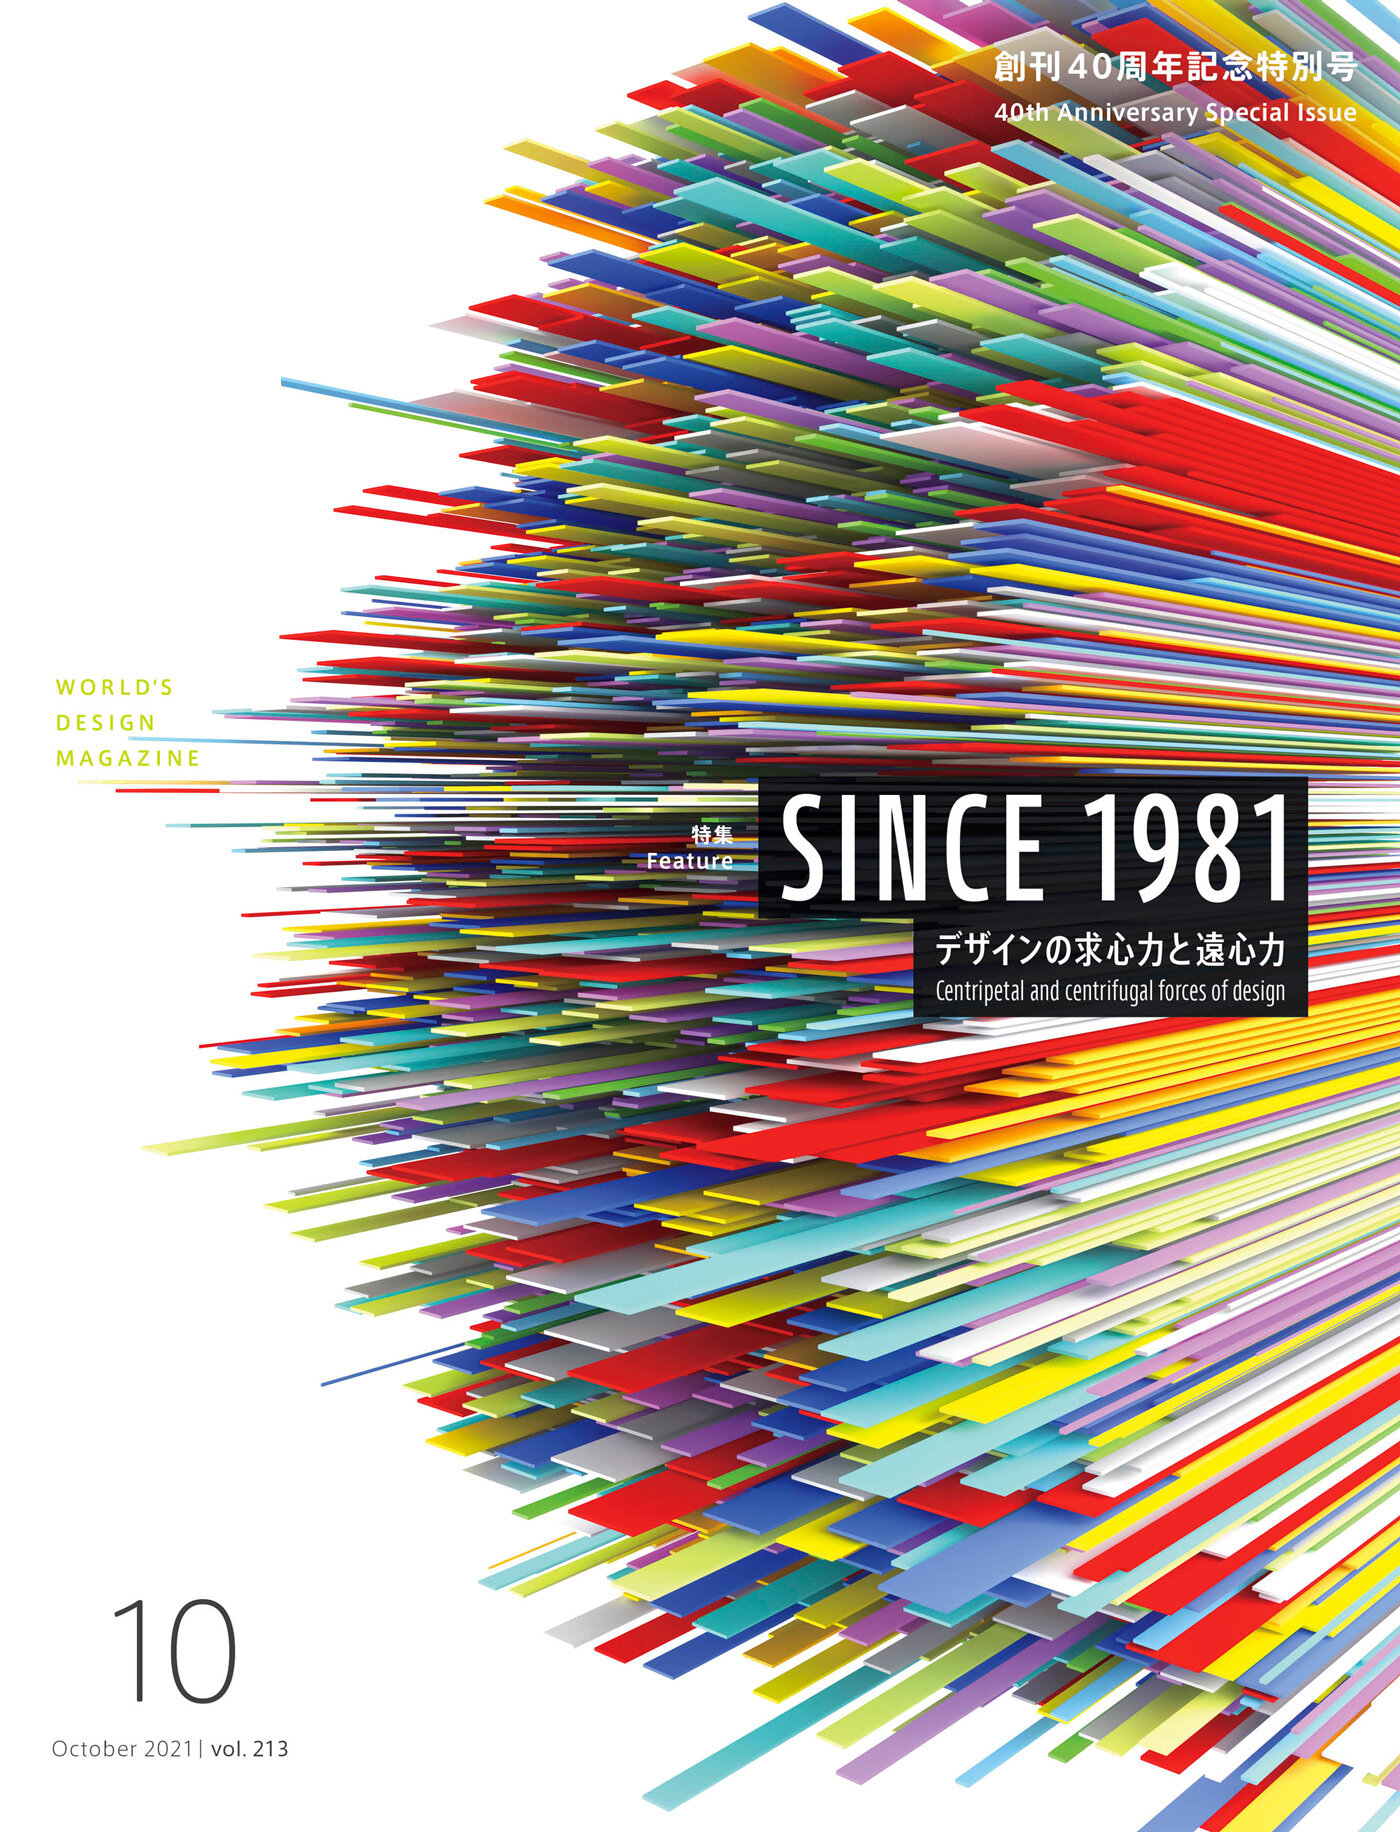 Design Magazine AXIS : 40th Anniversary Special Issue